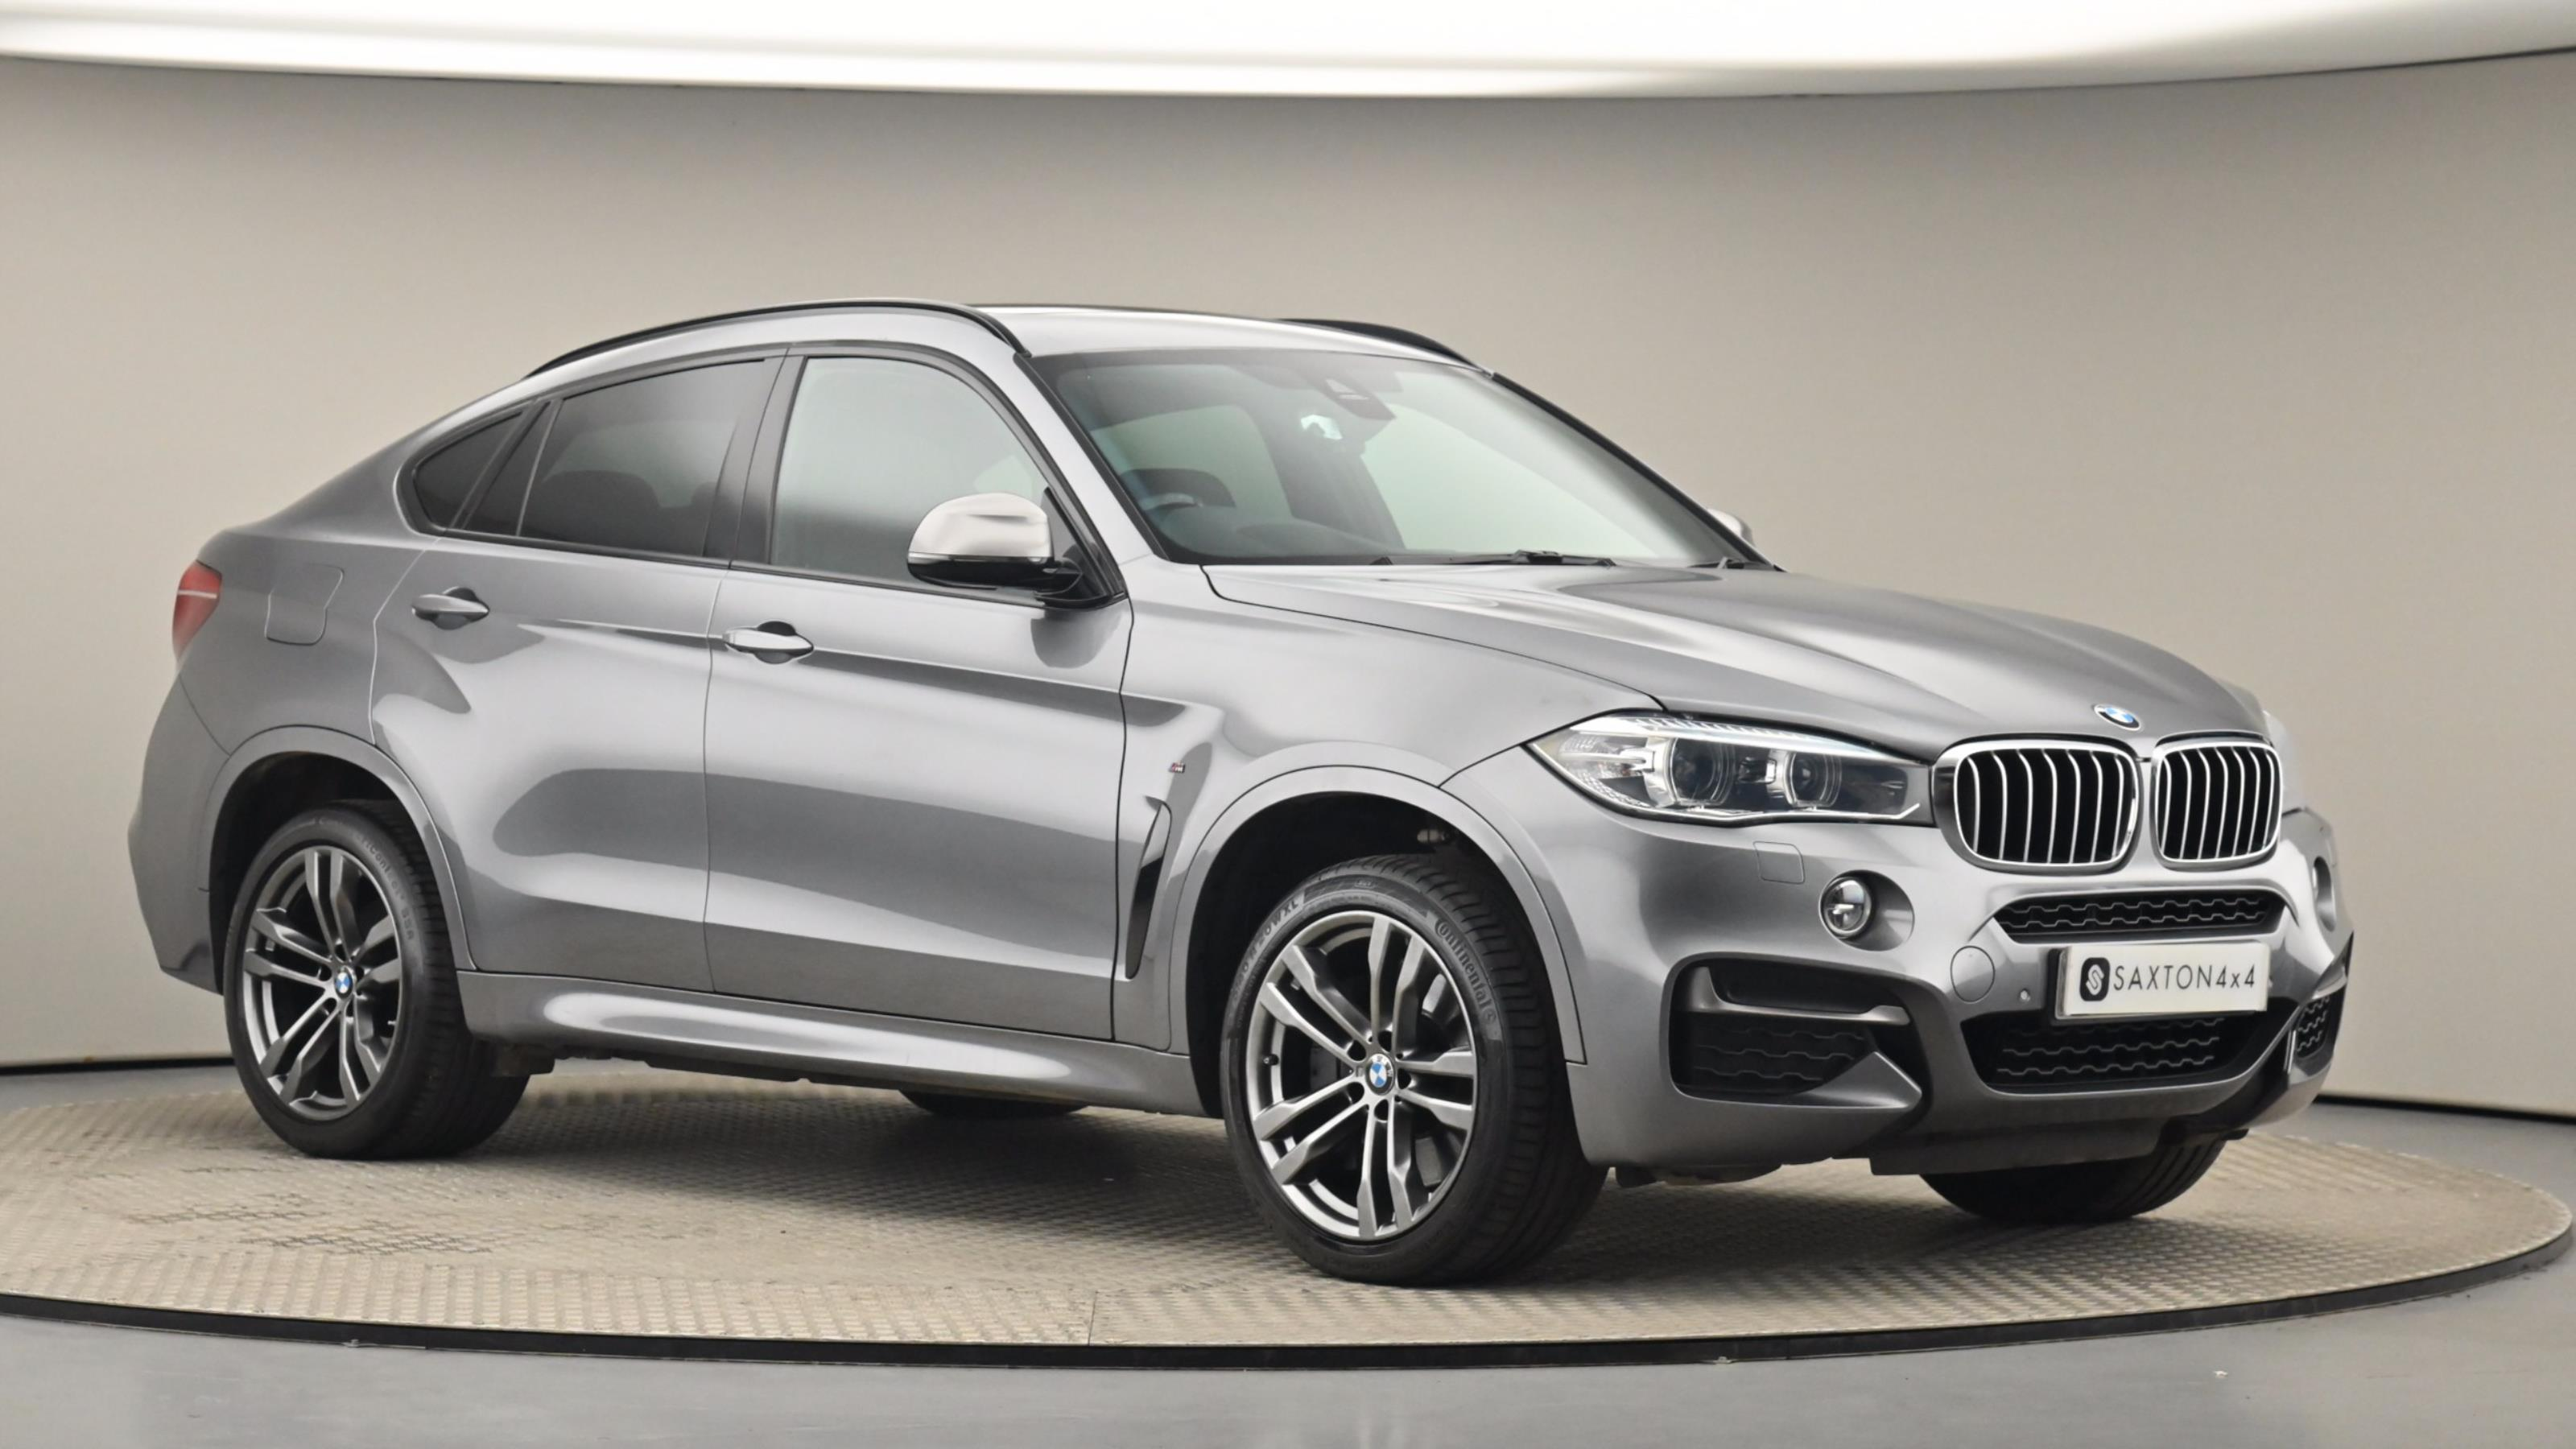 Used 2016 BMW X6 xDrive M50d 5dr Auto GREY at Saxton4x4